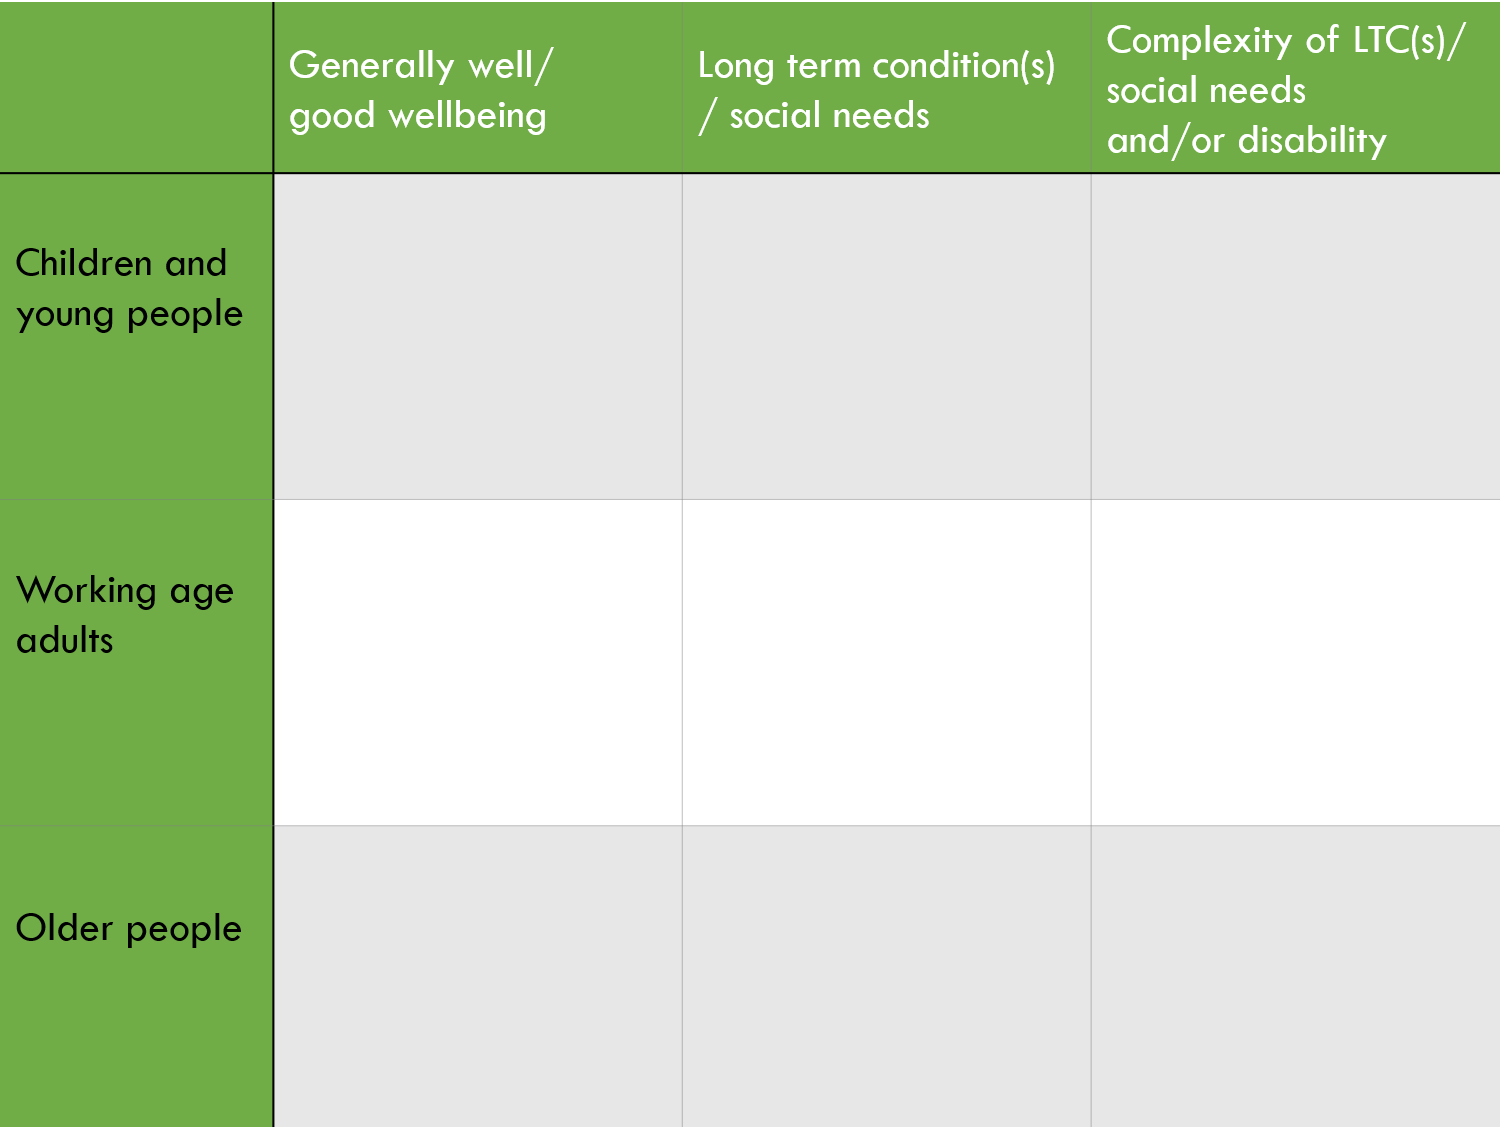 The primary care home population health management approach matrix